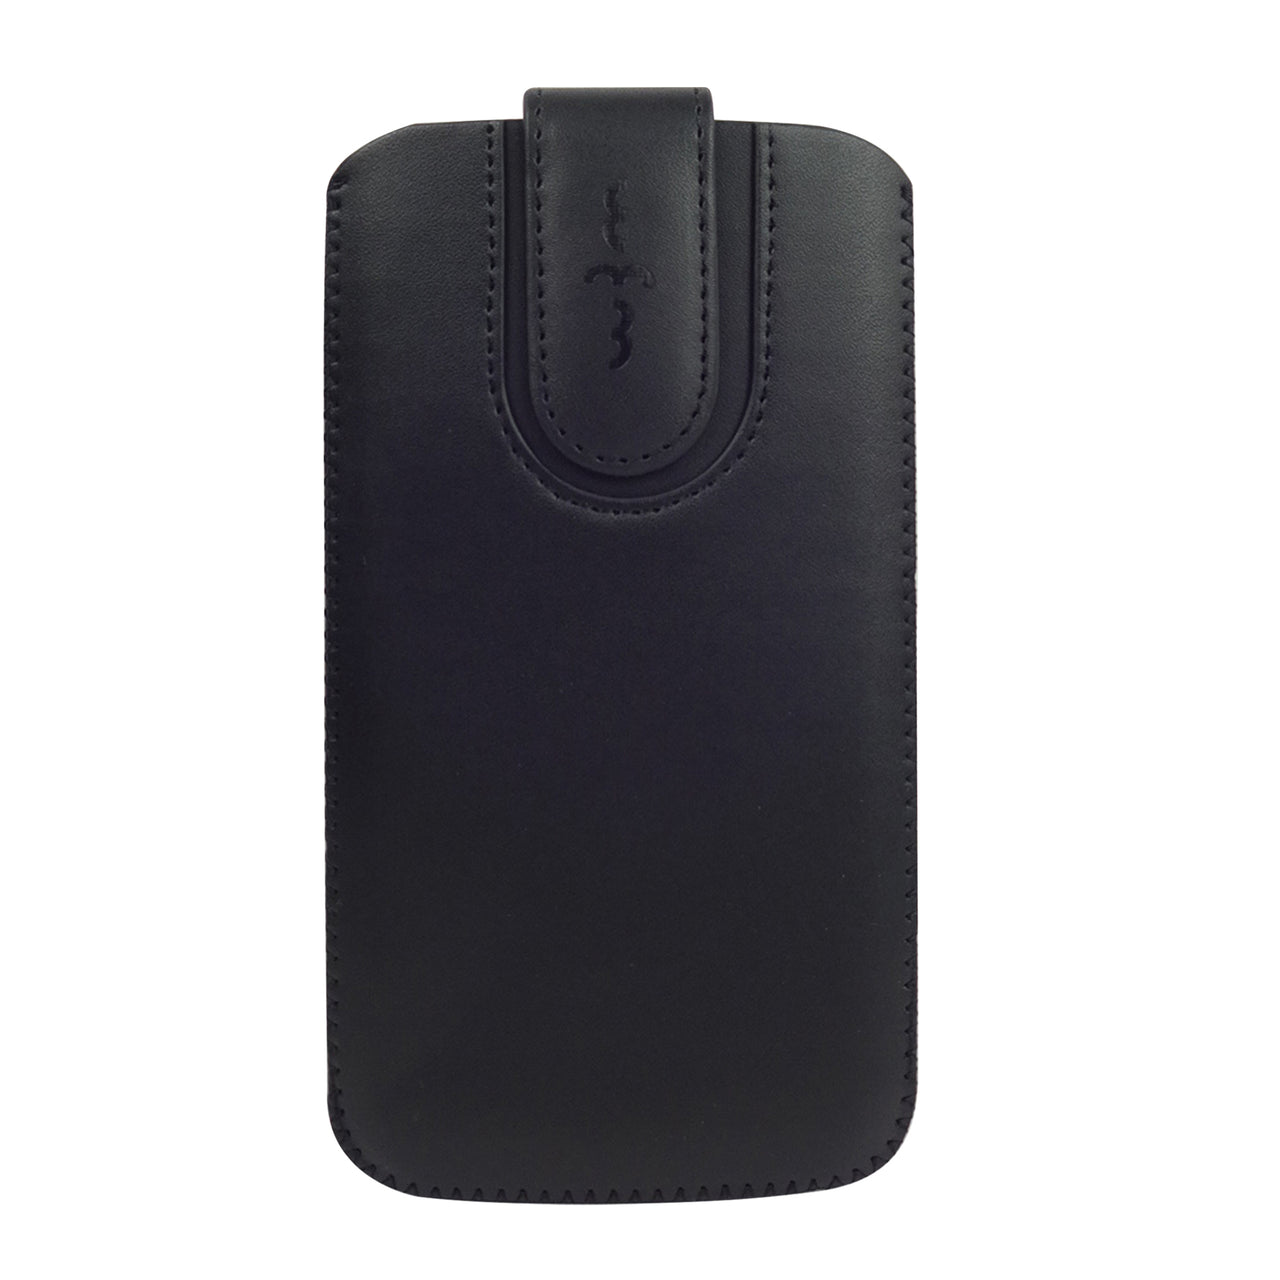 Universal Phone Pouch - Black